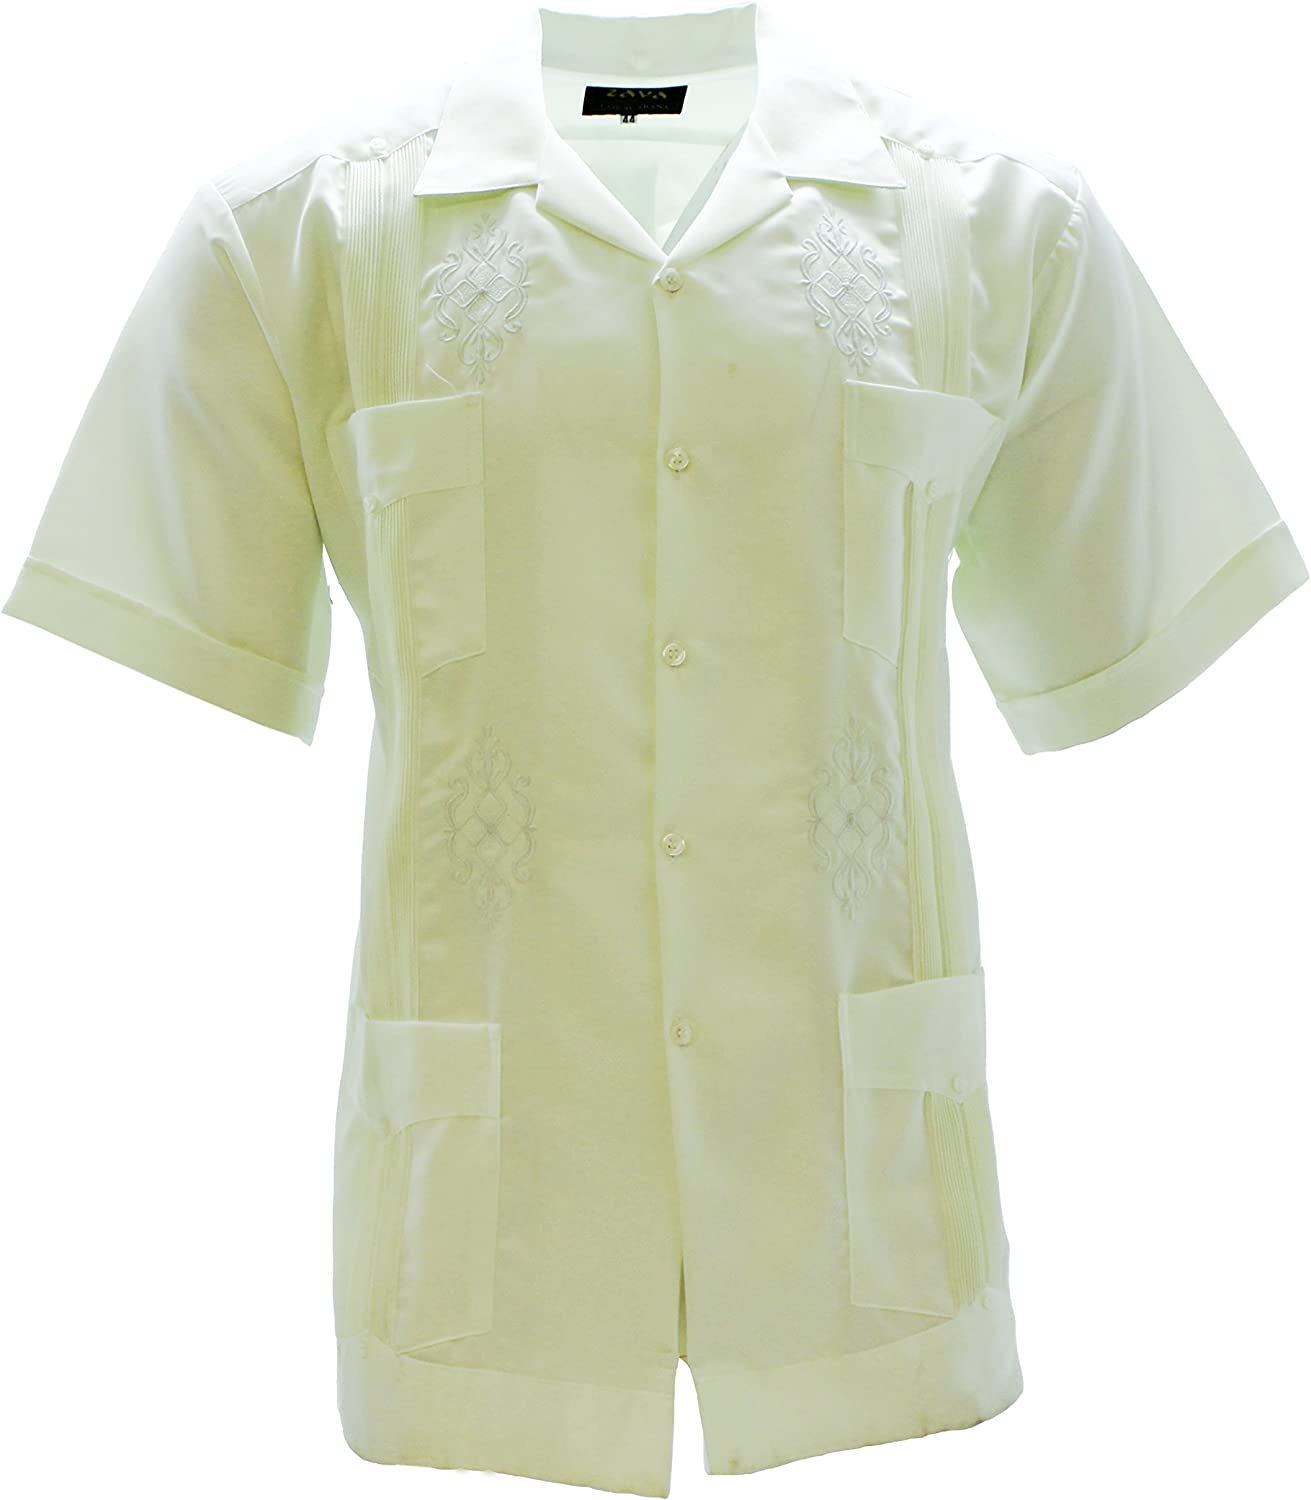 Authentic Guayabera Yucateca Copacabana Classica For Kids Color Light Brown